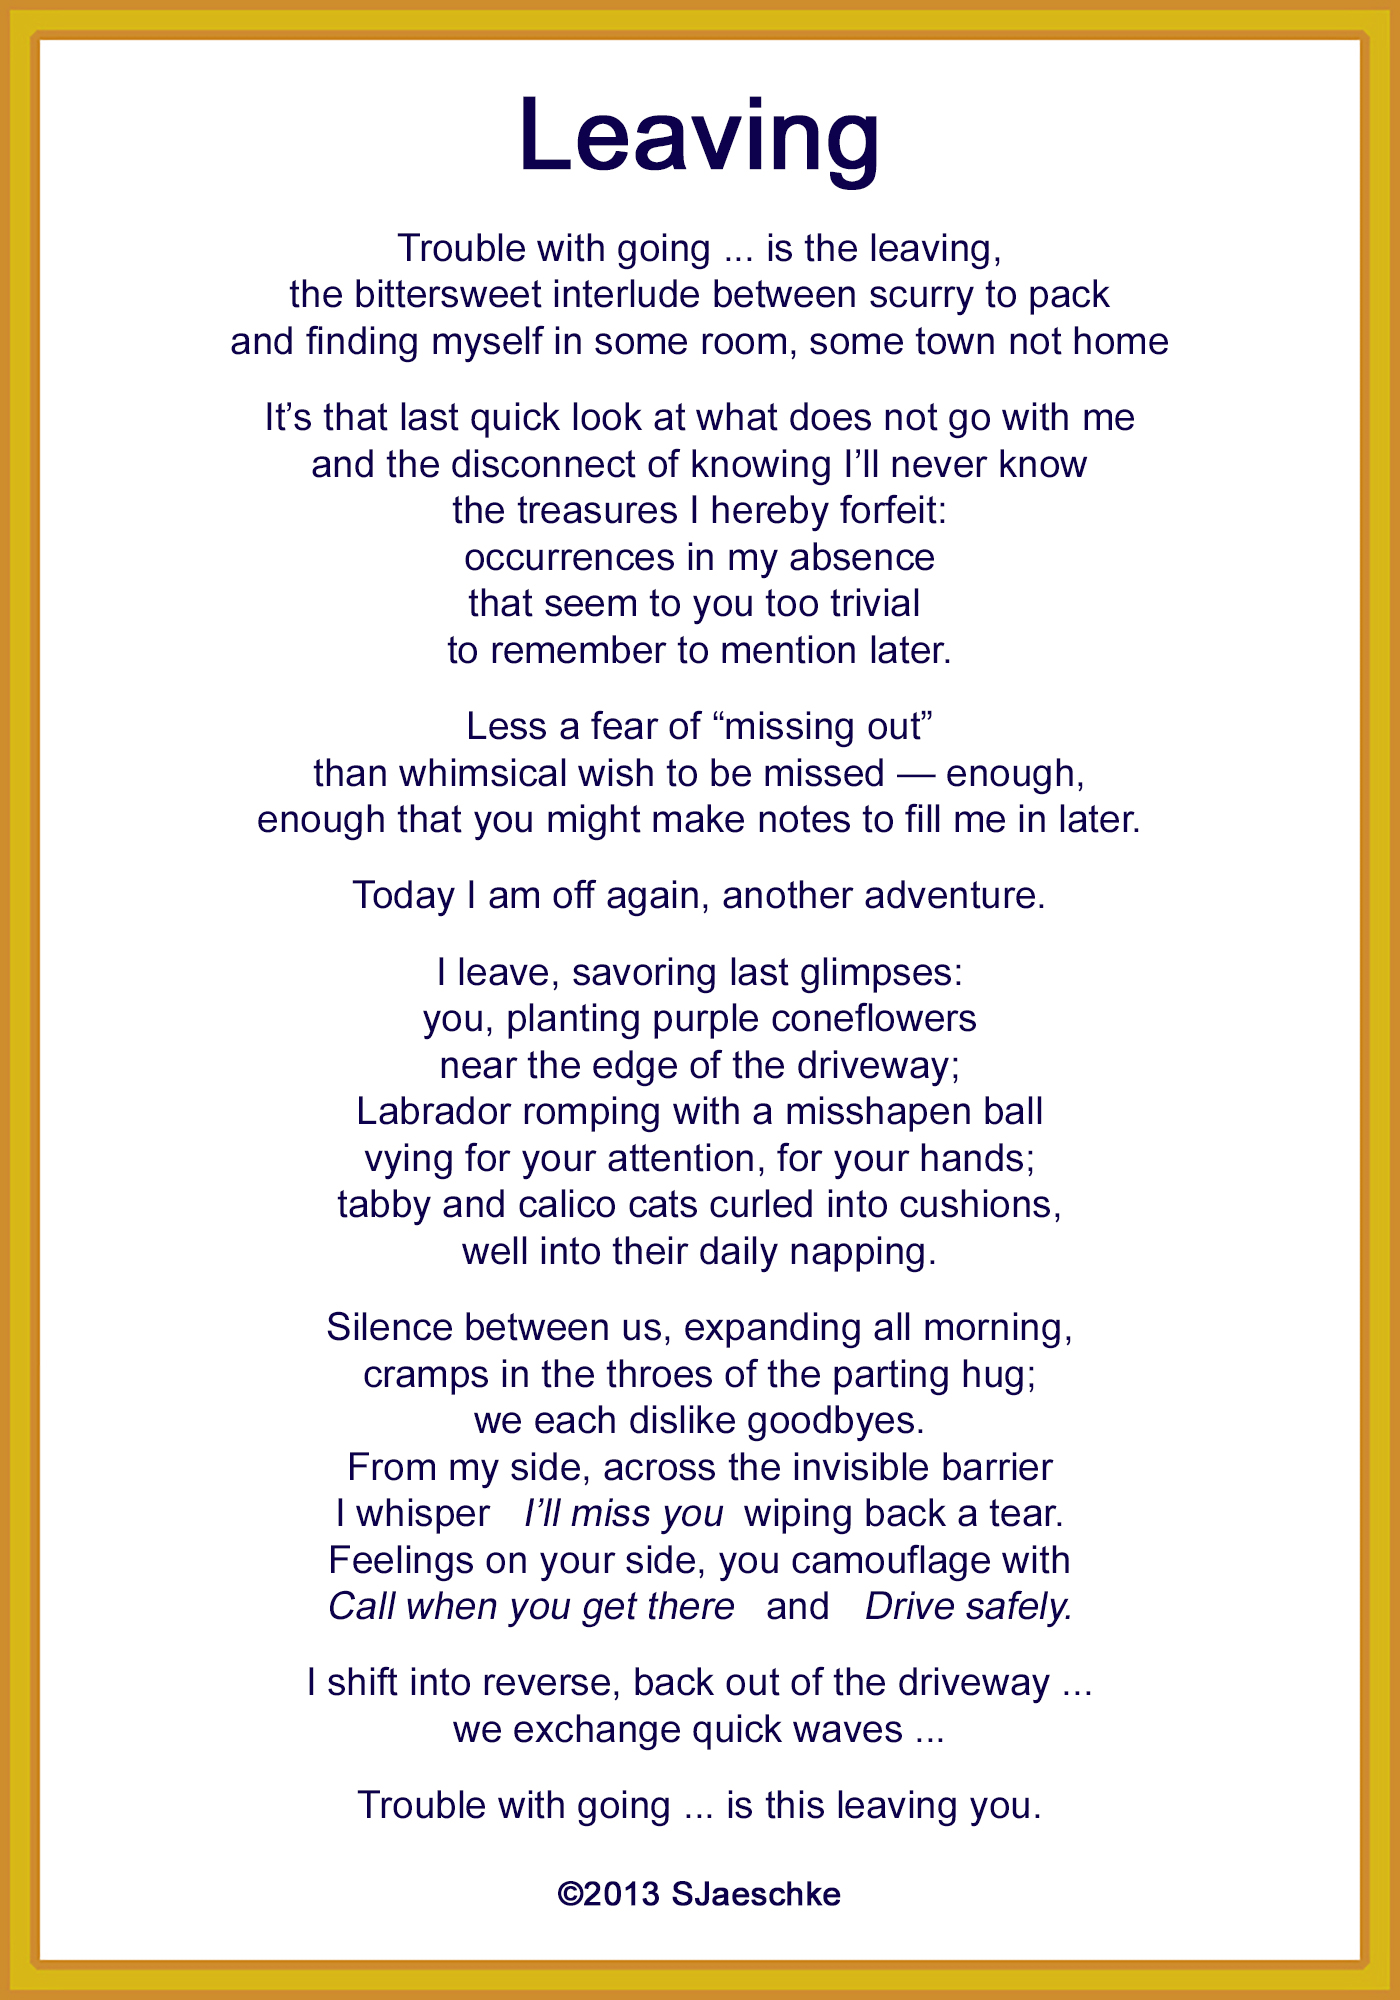 post_2017-01-31_poem_leaving